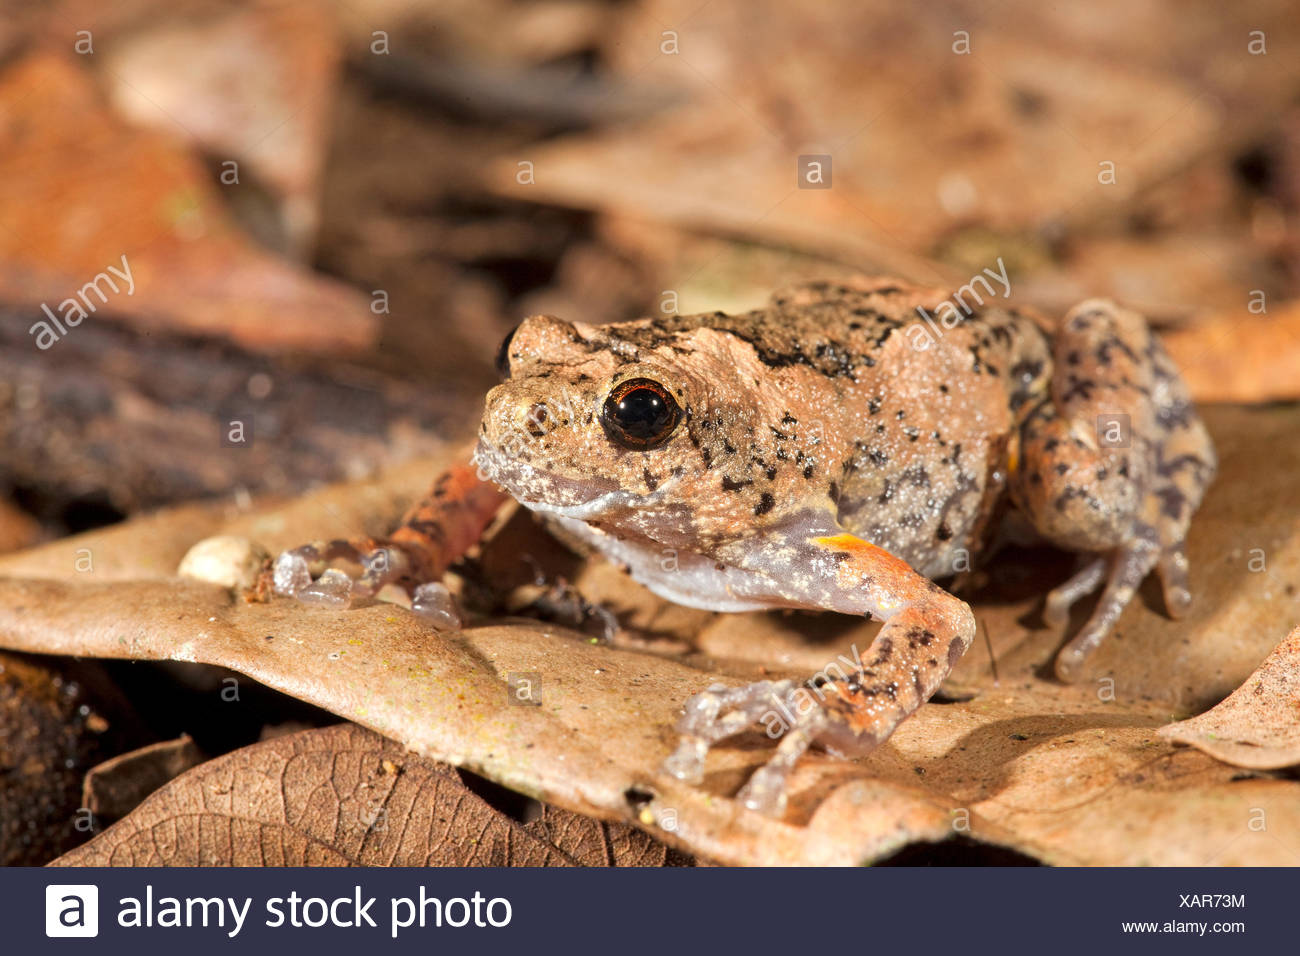 Photo of a tree hole frog, they lay their eggs in tree holes, males call from tree holes so the females can locate them Stock Photo